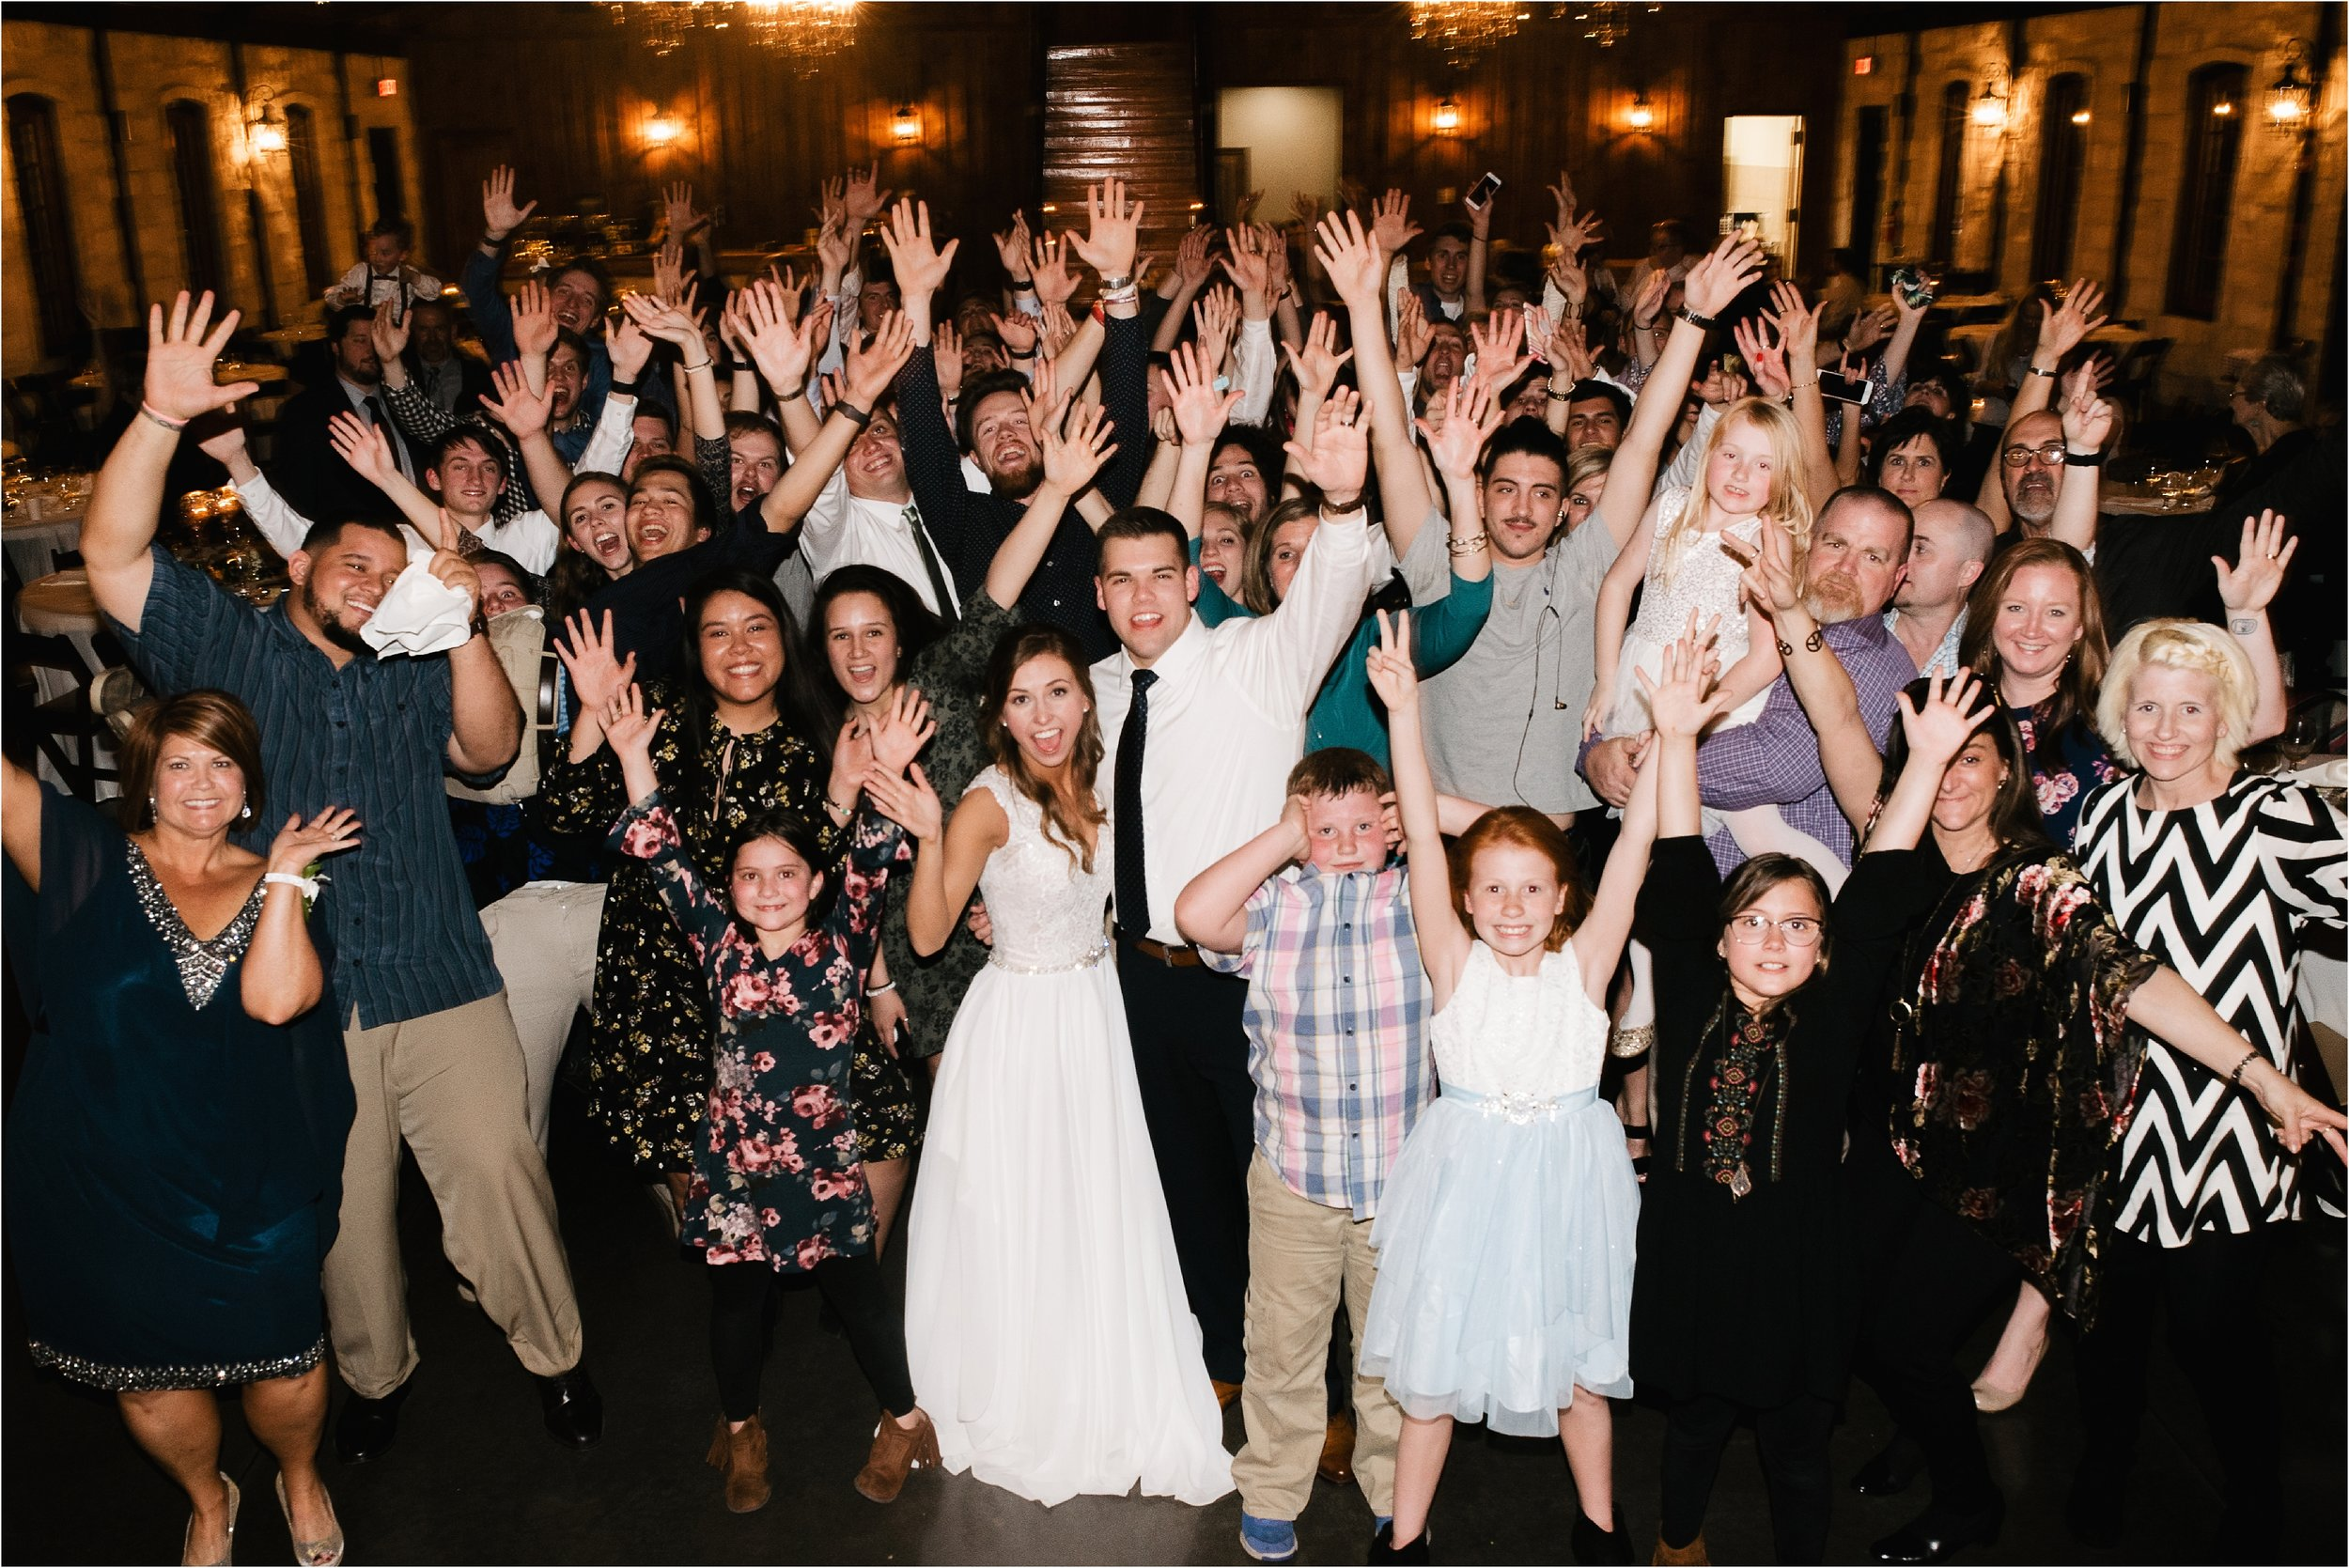 oklahoma wedding photographer reception family friends hugs congratulations best wishes toasts dancing the springs norman okc group photograph